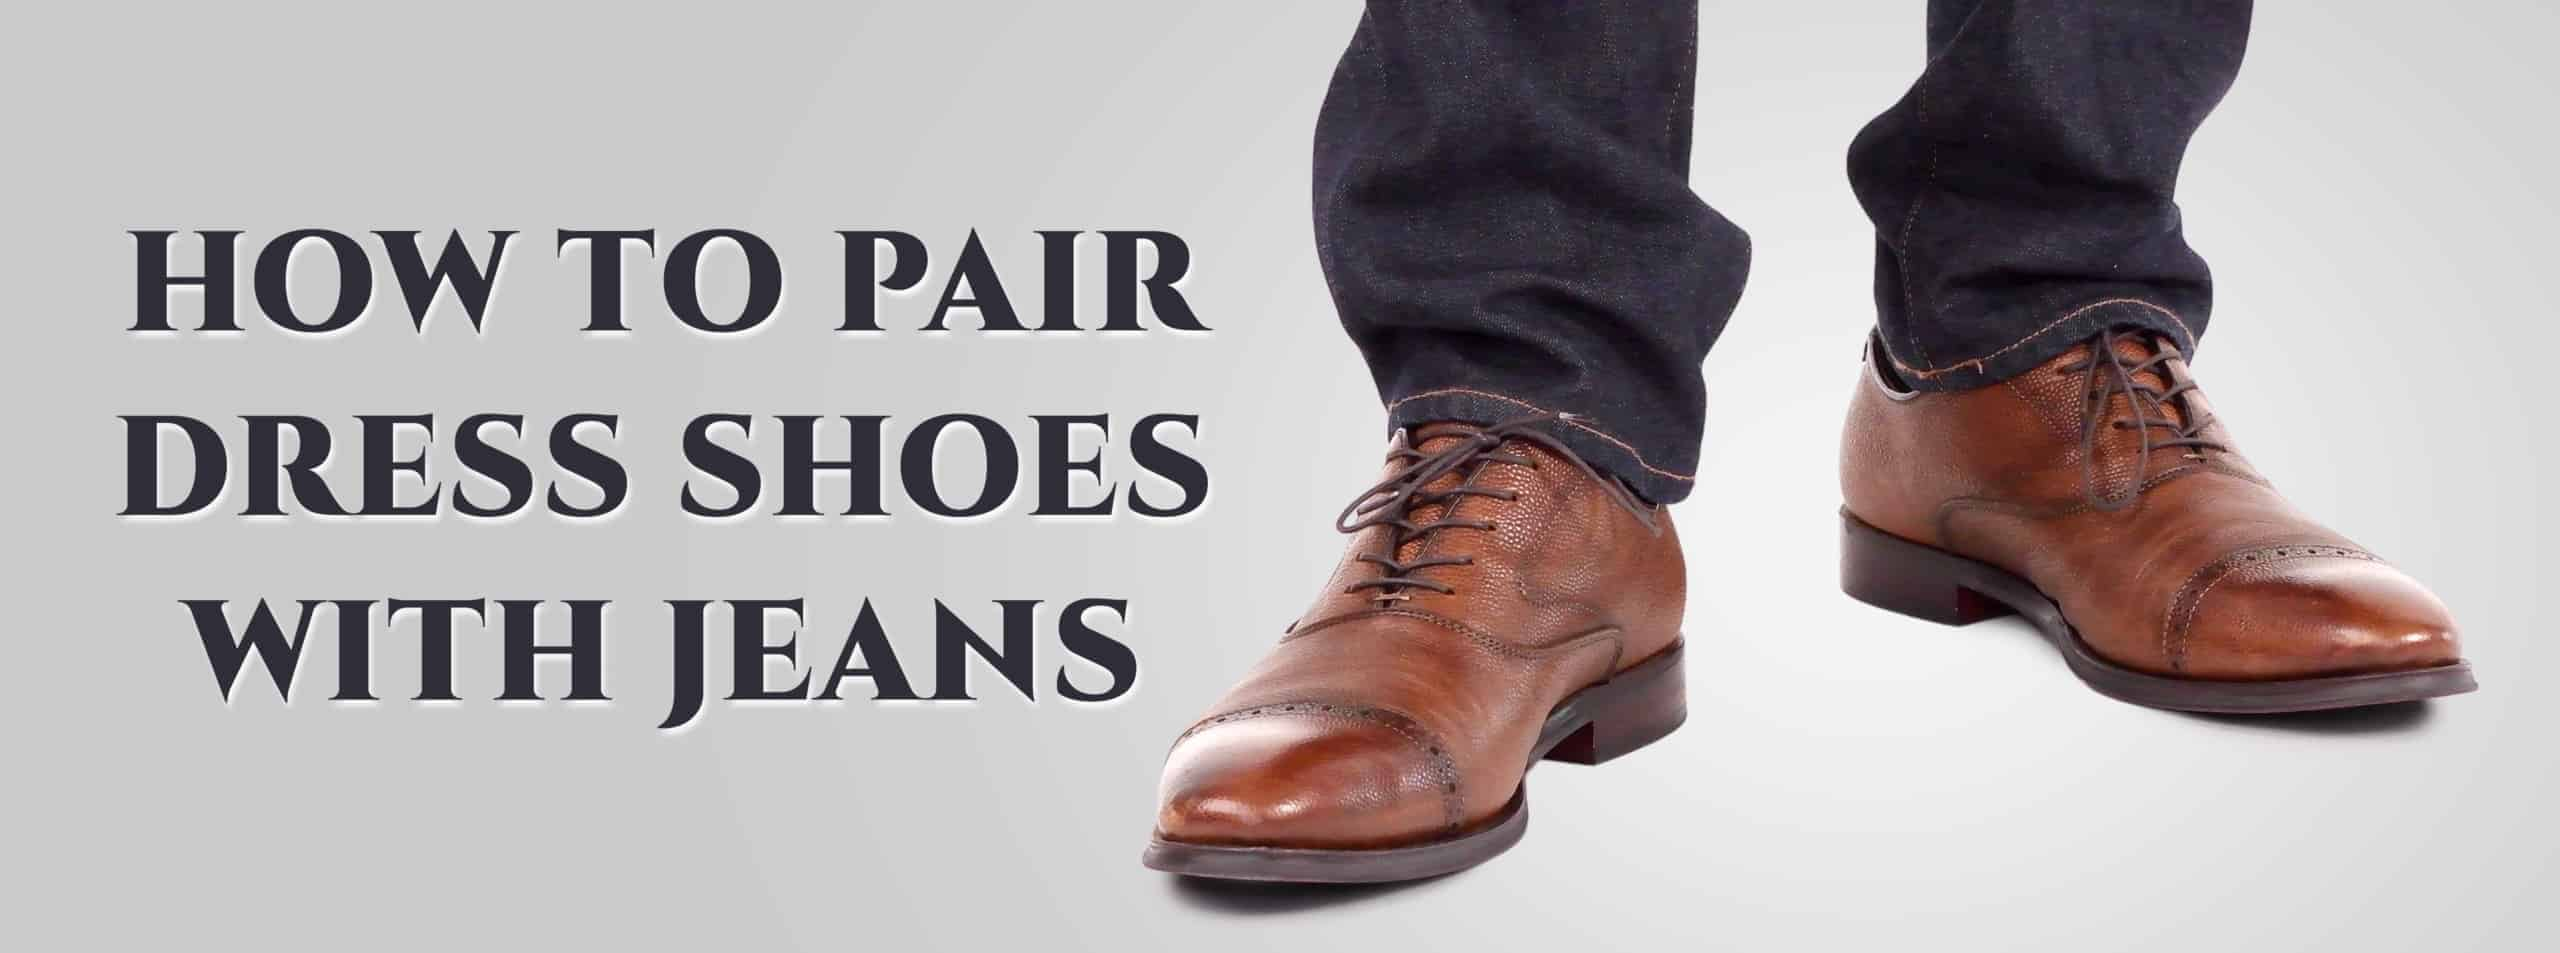 How to Pair Dress Shoes with Jeans